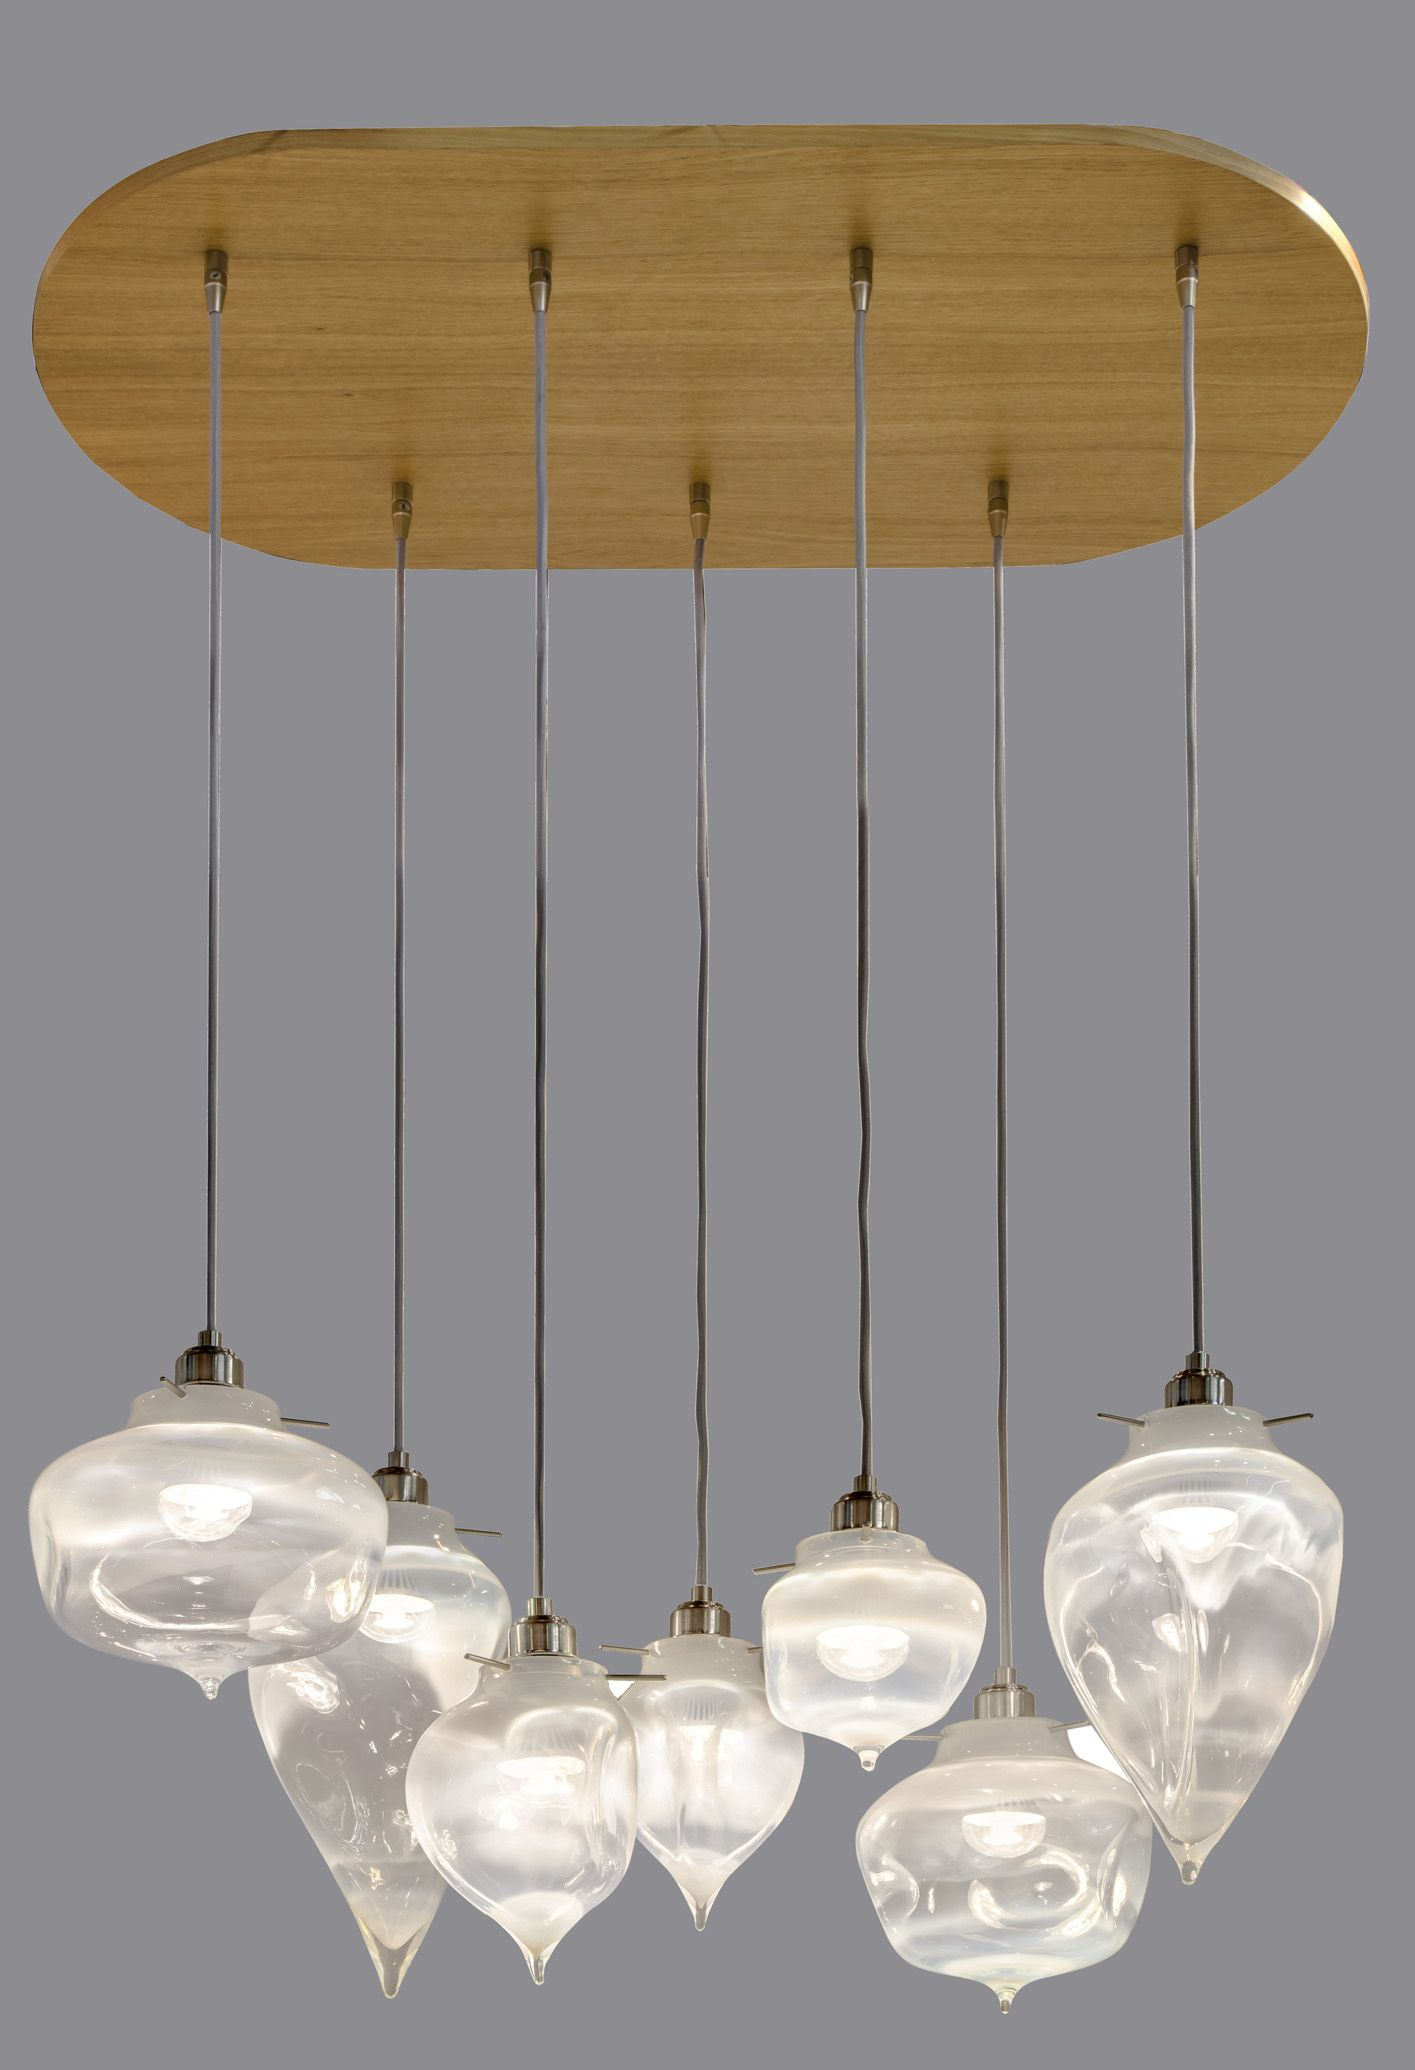 Alabaster Rock Chandelier With Wood Canopy By Jamie Harris At